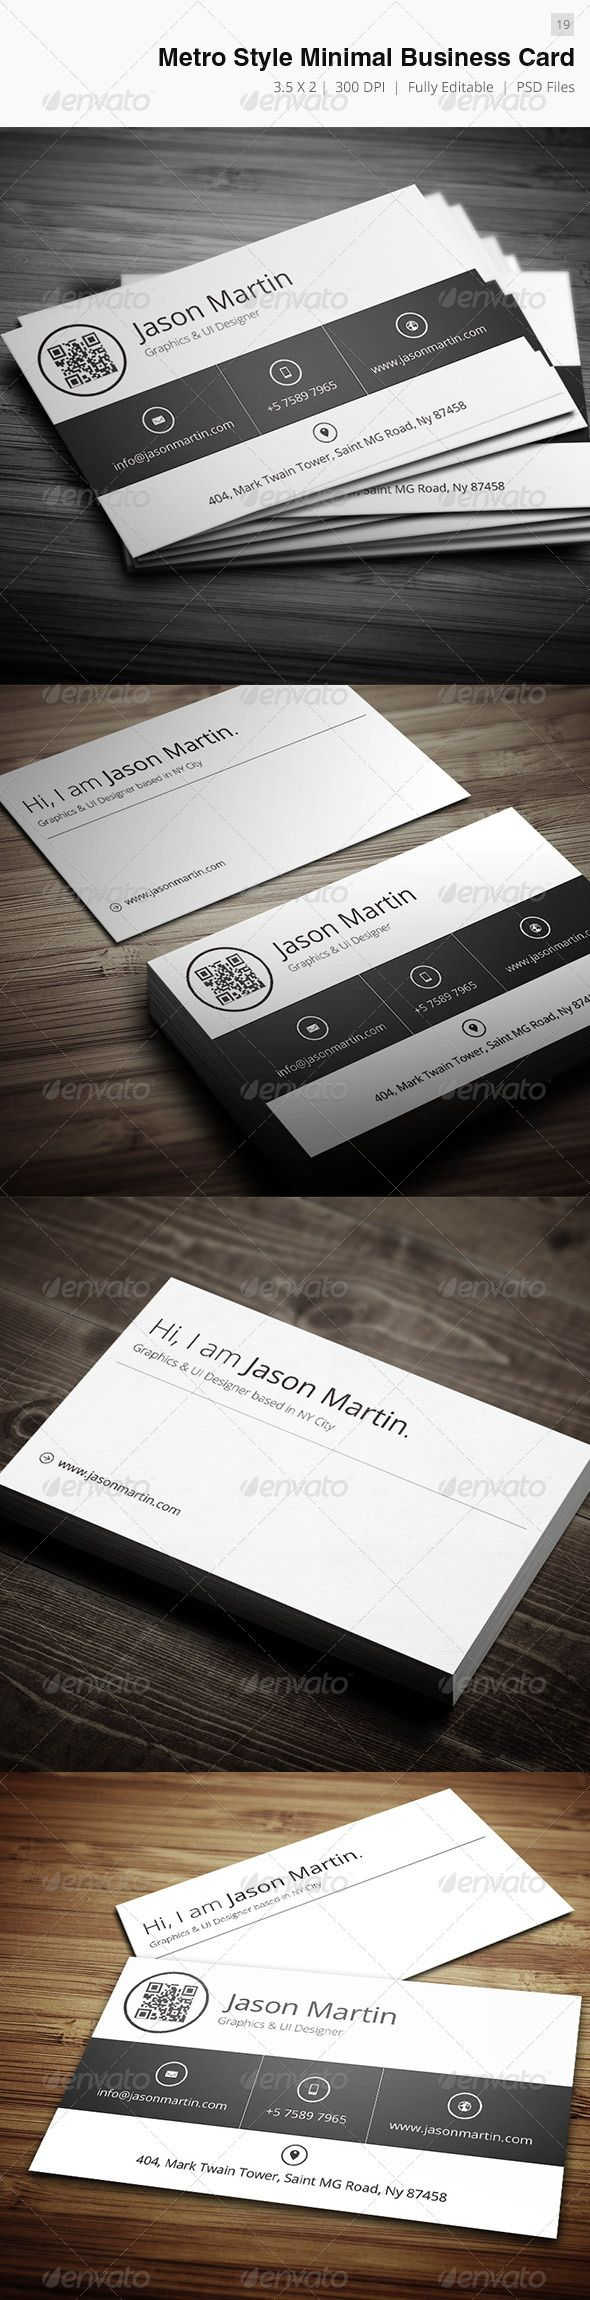 Metro Style Minimal Business Card - 19 #GraphicRiver Business card – perfect for any idustry. Features. 300 DPI CMYK Print Ready! - Full Editable, Layered you can find fonts here: Open sans – .google /webfonts/specimen/Open+Sans please dont forget to rate it. Created: 12December12 GraphicsFilesIncluded: PhotoshopPSD Layered: Yes MinimumAdobeCSVersion: CS2 PrintDimensions: 3.5x2 Tags: attractive #beautiful #brand #cmyk #color #cool #creaitve #designer #developer #executive #freelancer #hd…